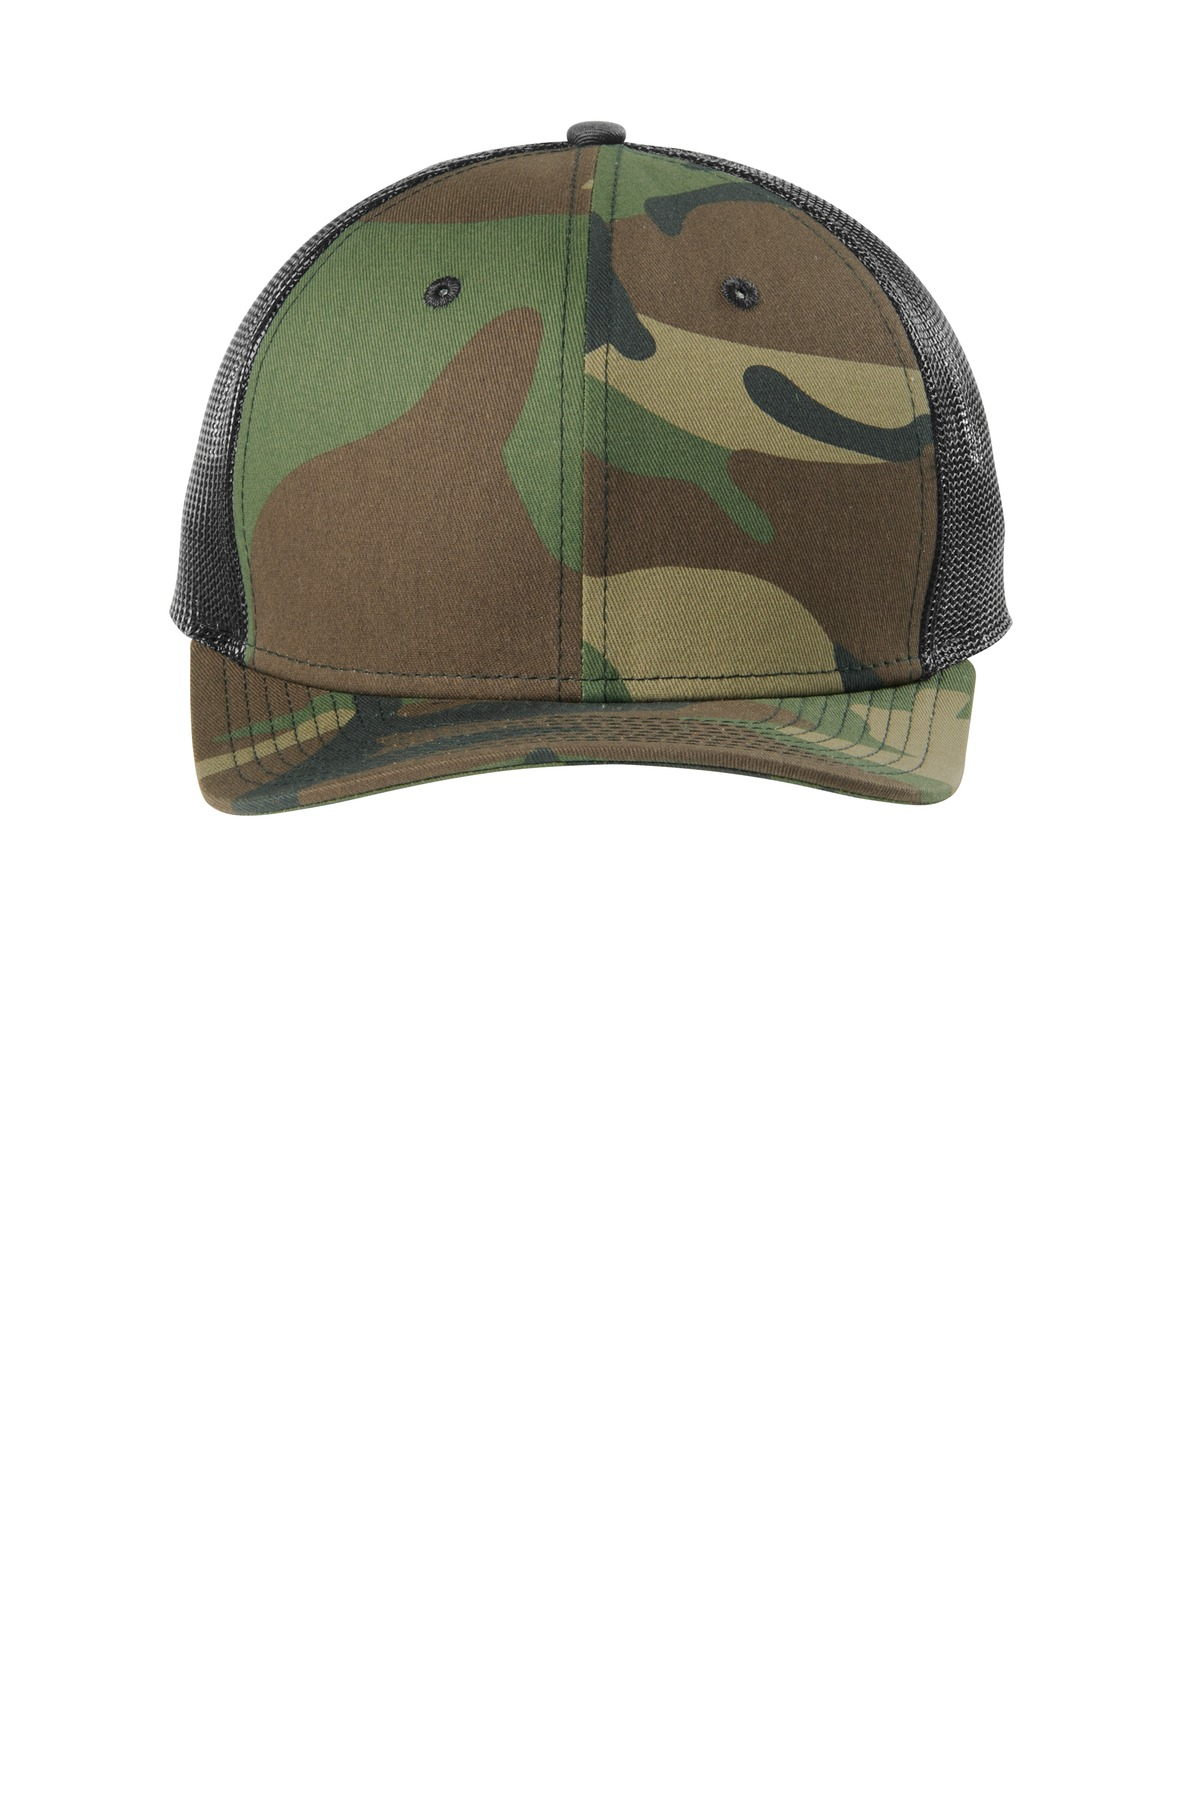 New Era  ®   Snapback Low Profile Trucker Cap   NE207 - Camo/ Black